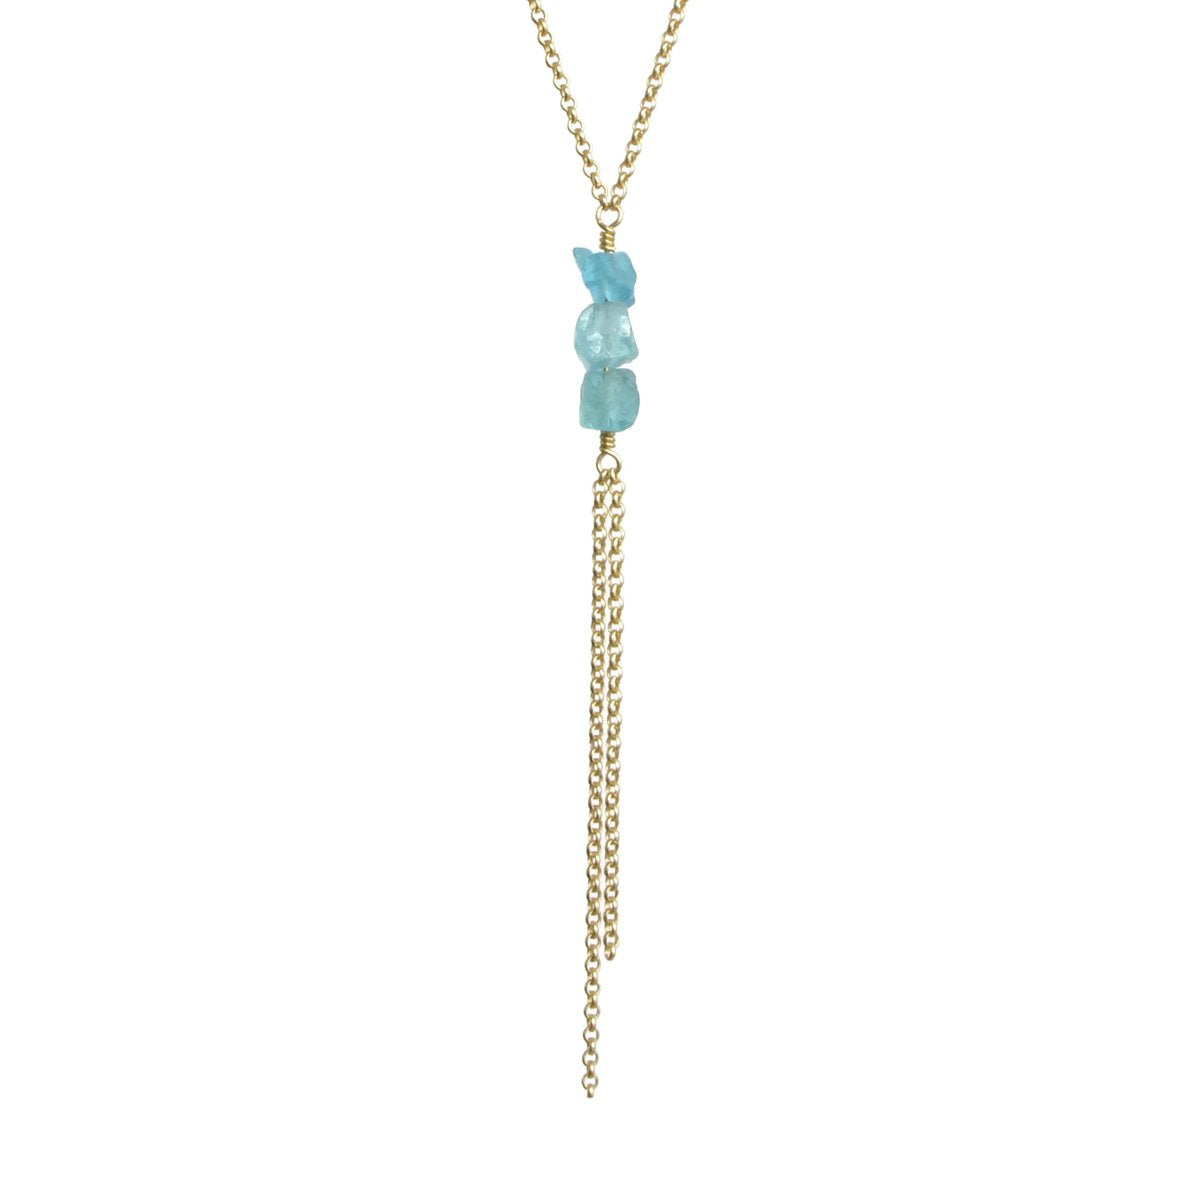 Darya Necklace - Apatite